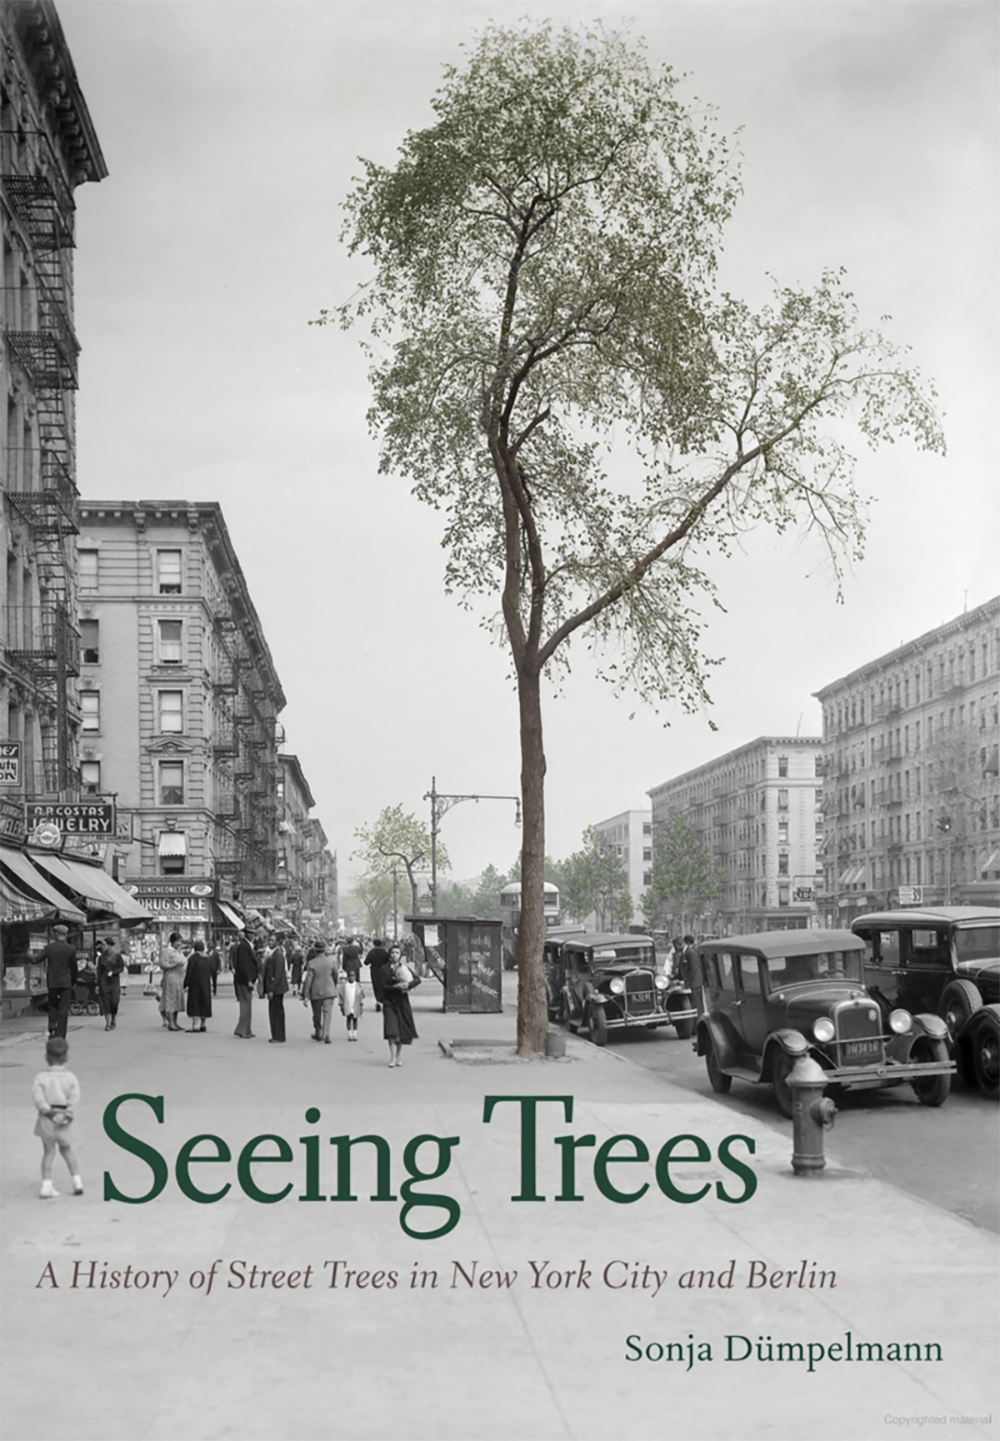 Cover of Seeing Trees book by Sonja Dumpelmann